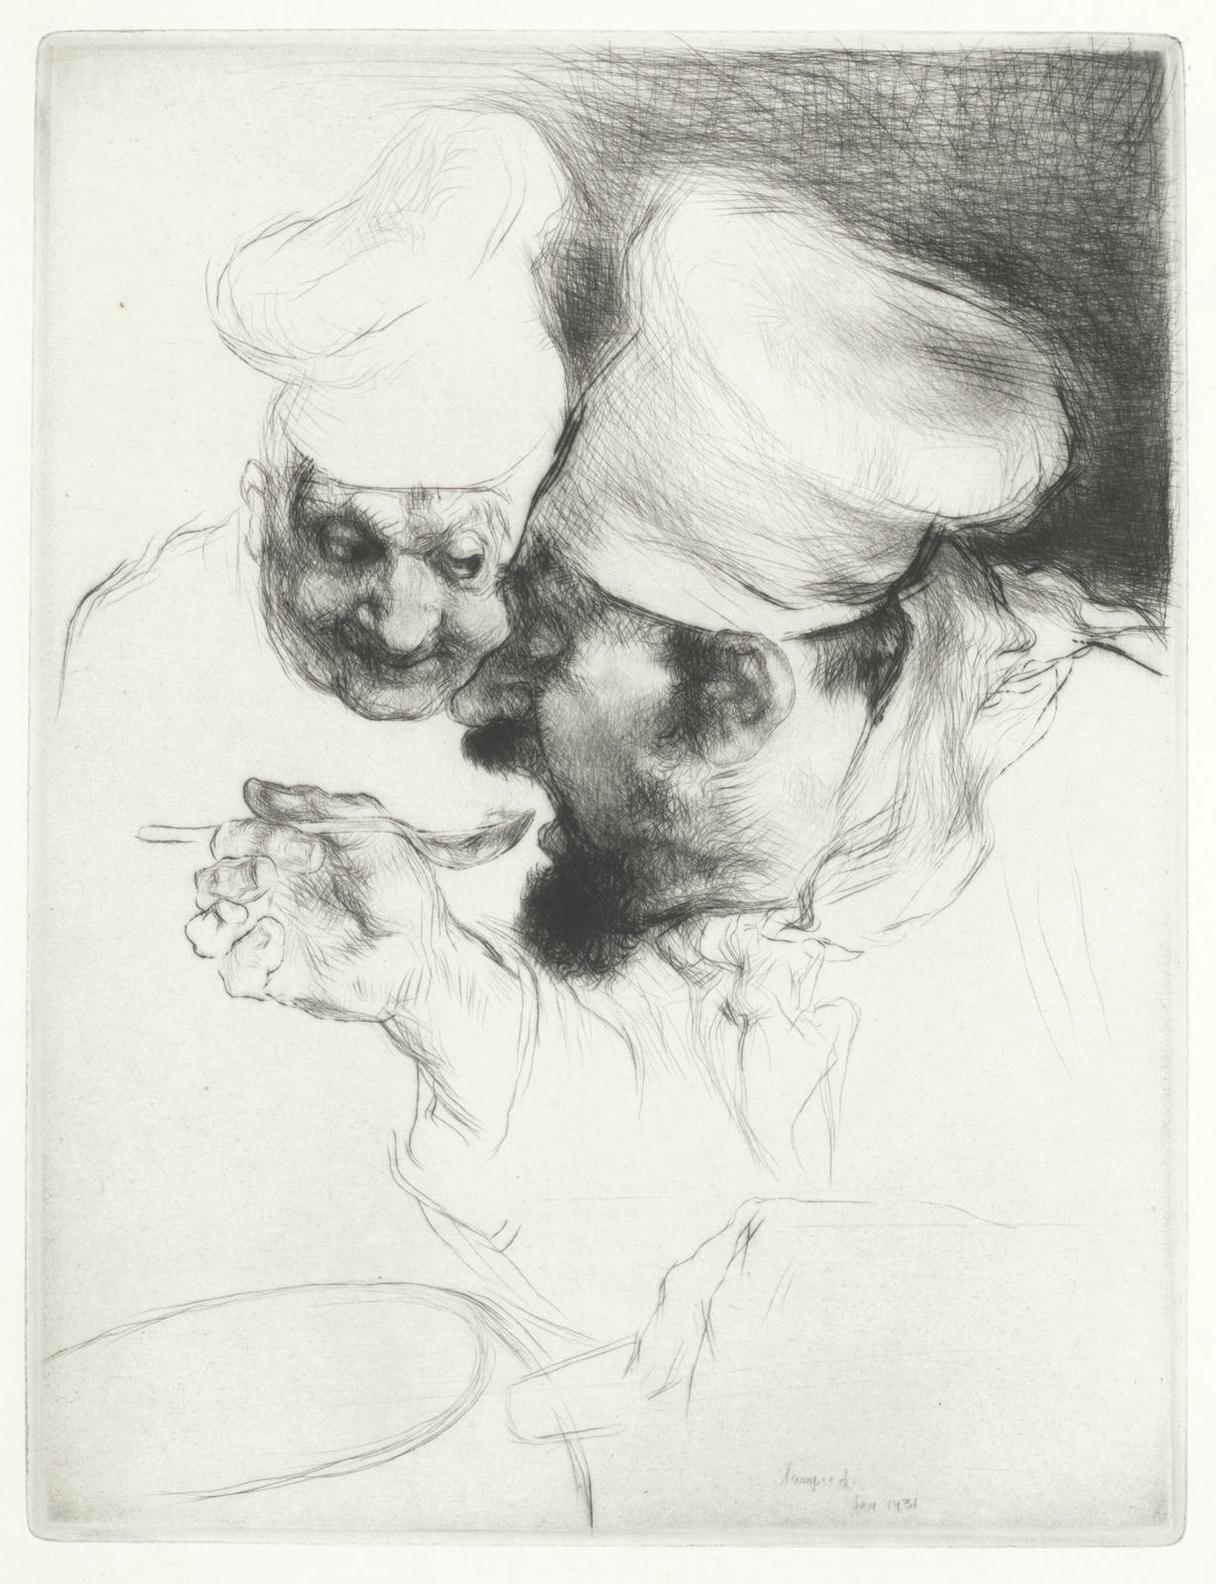 Edmund Blampied-A Group Of Etchings: Le Chef Doeuvre; Fetch It; The Bathing Machine; Fairy Tales; Untitled; A Holiday Morning; The Centenarian And The Market Argument-1931